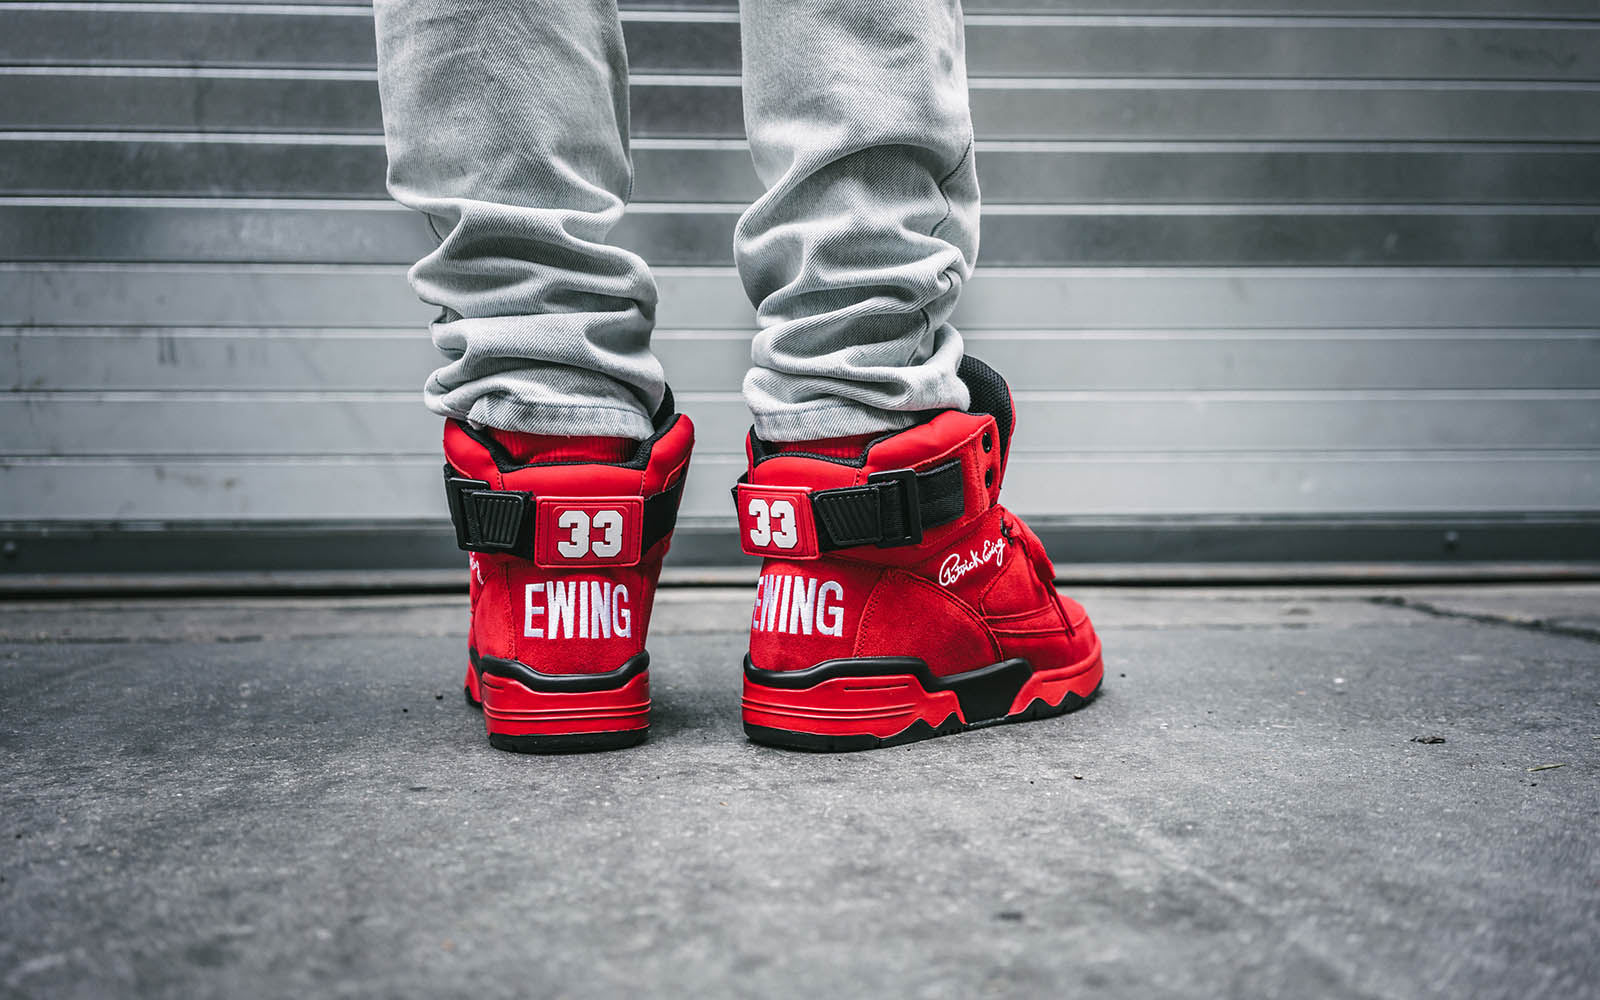 ewing february 2018 retro 33 mid red/black/white limited edition sneakers by nba legend patrick ewing on thedrop